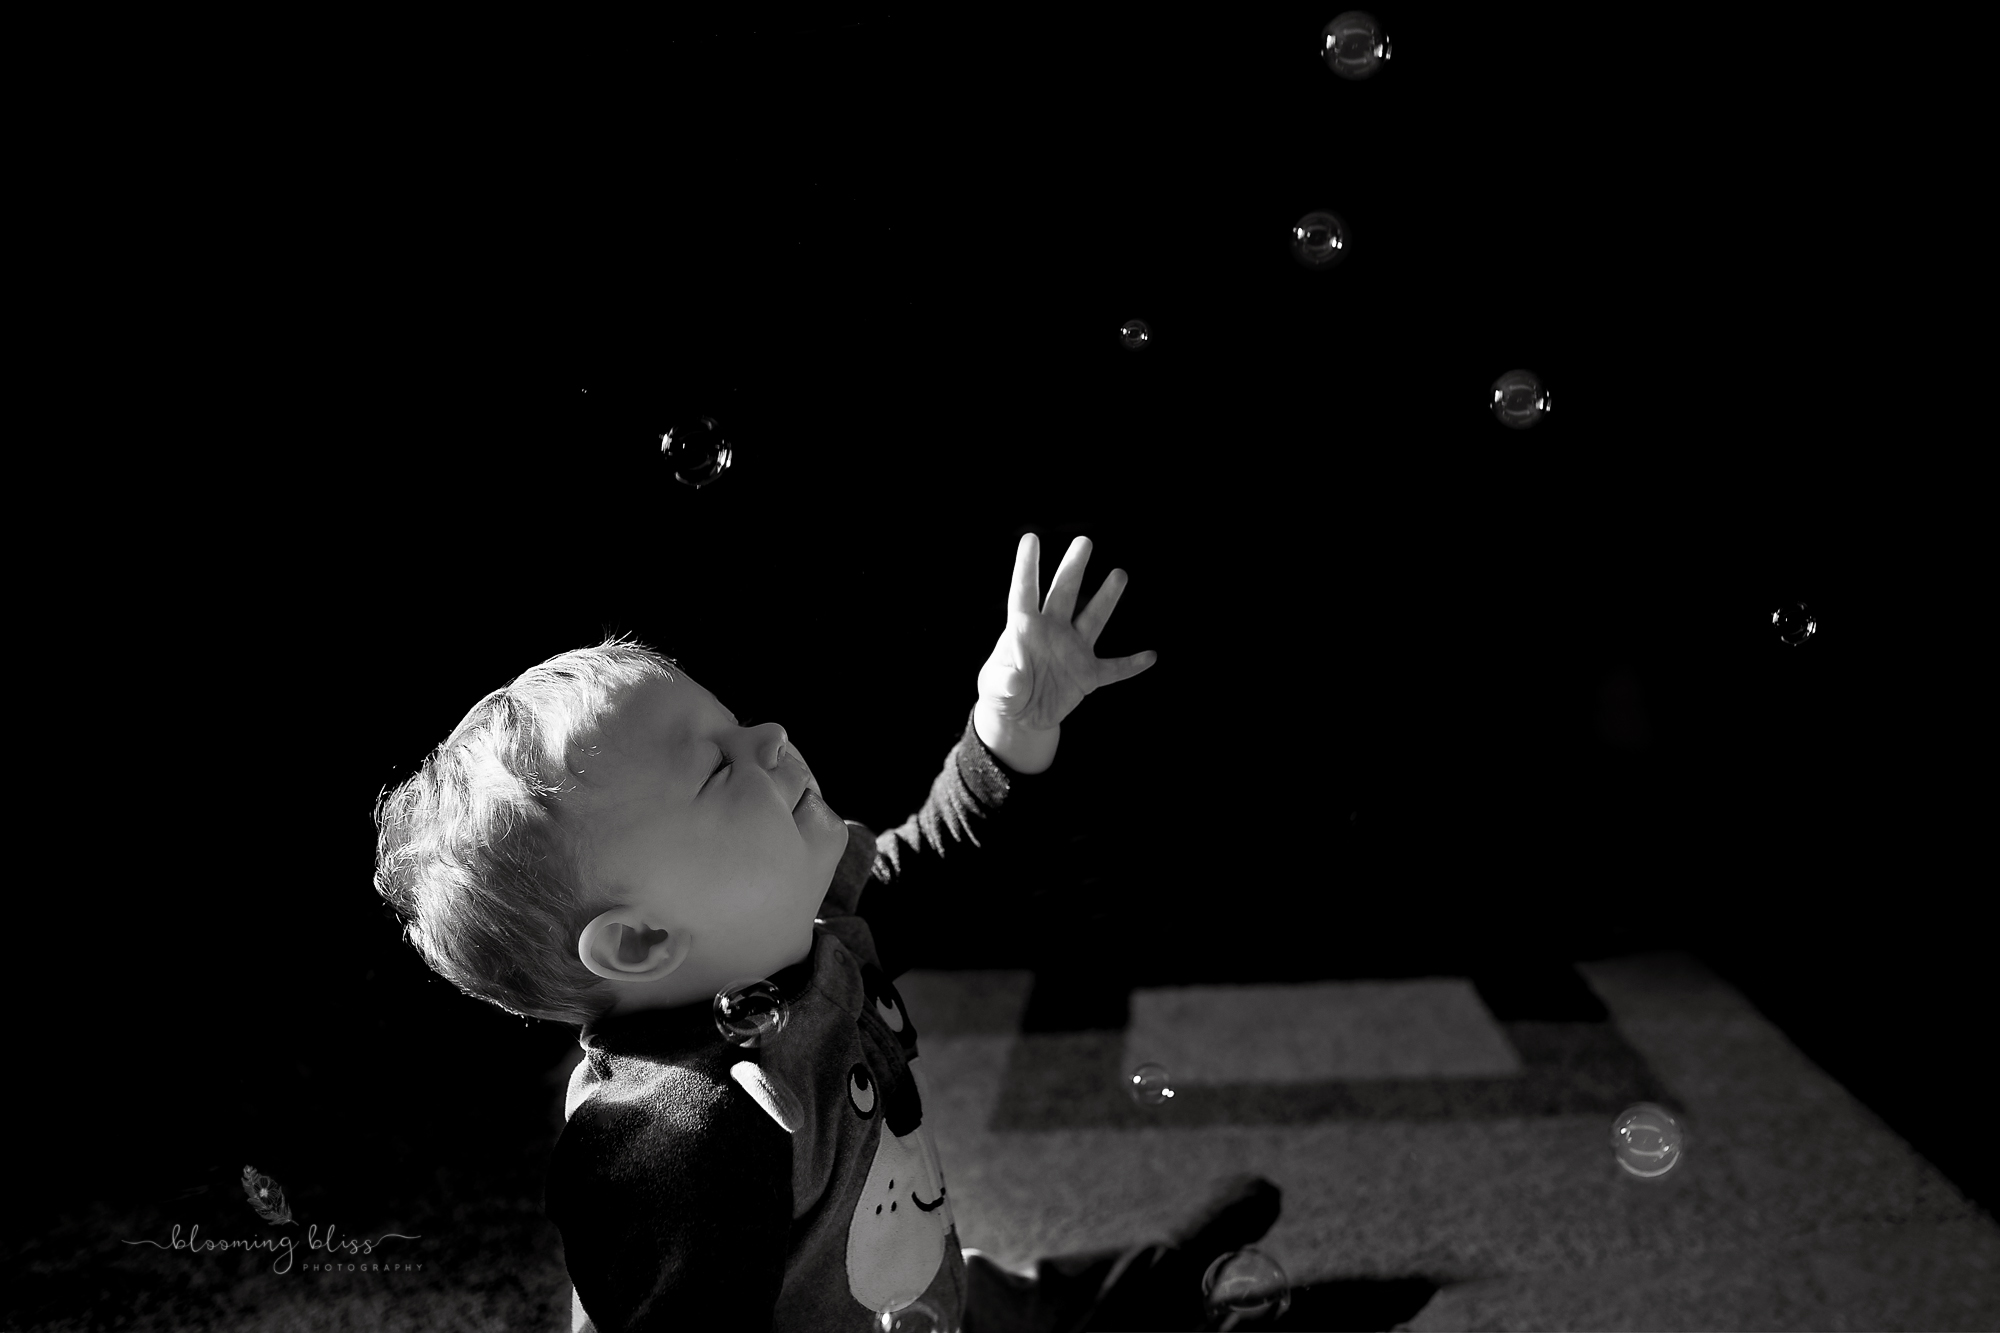 DAY 24 - CATCHING BUBBLES